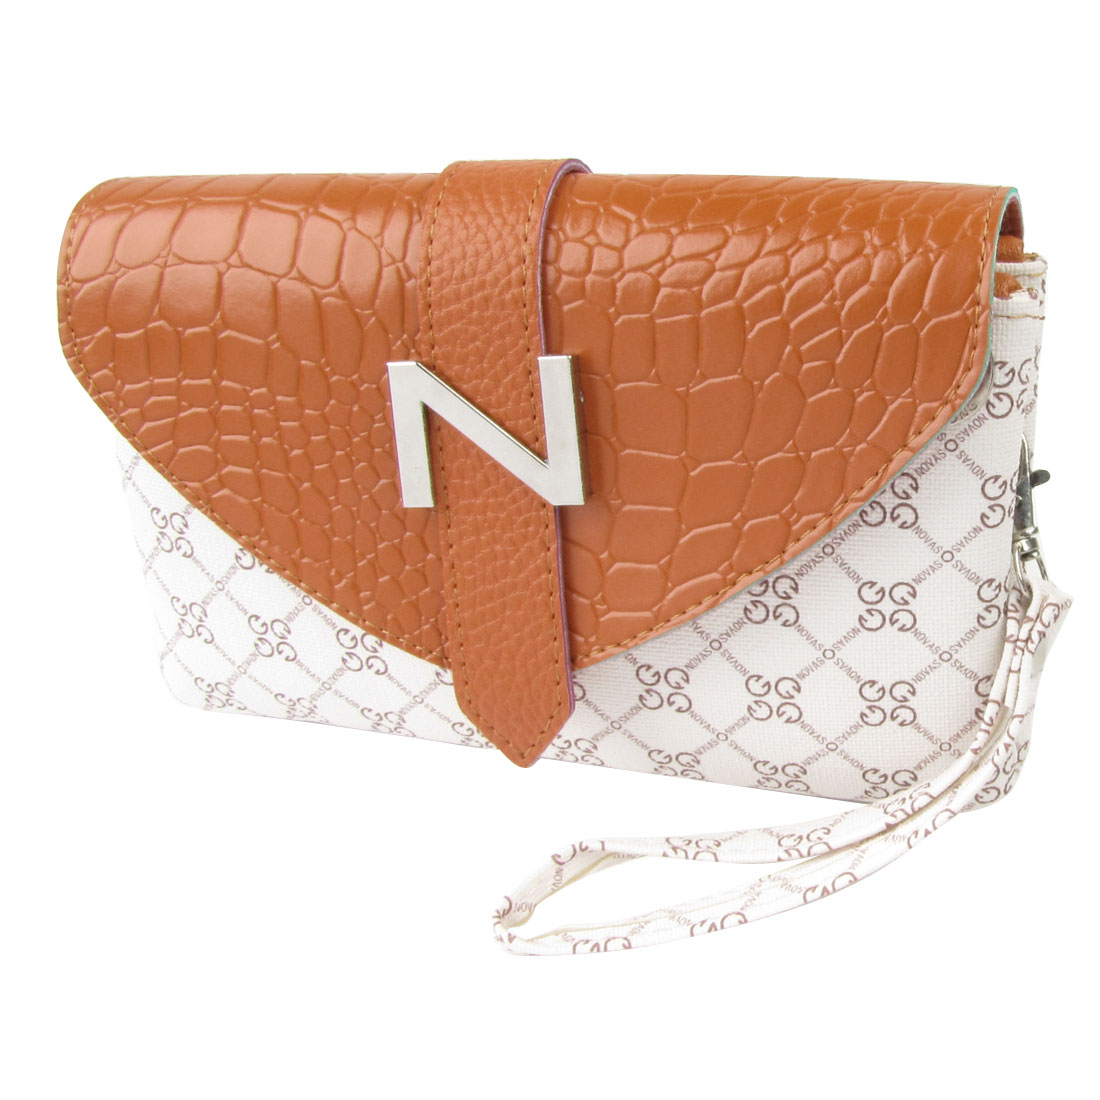 Lady 3 Compartments Letters Print Faux Leather Handbag Shoulderbag Orange White